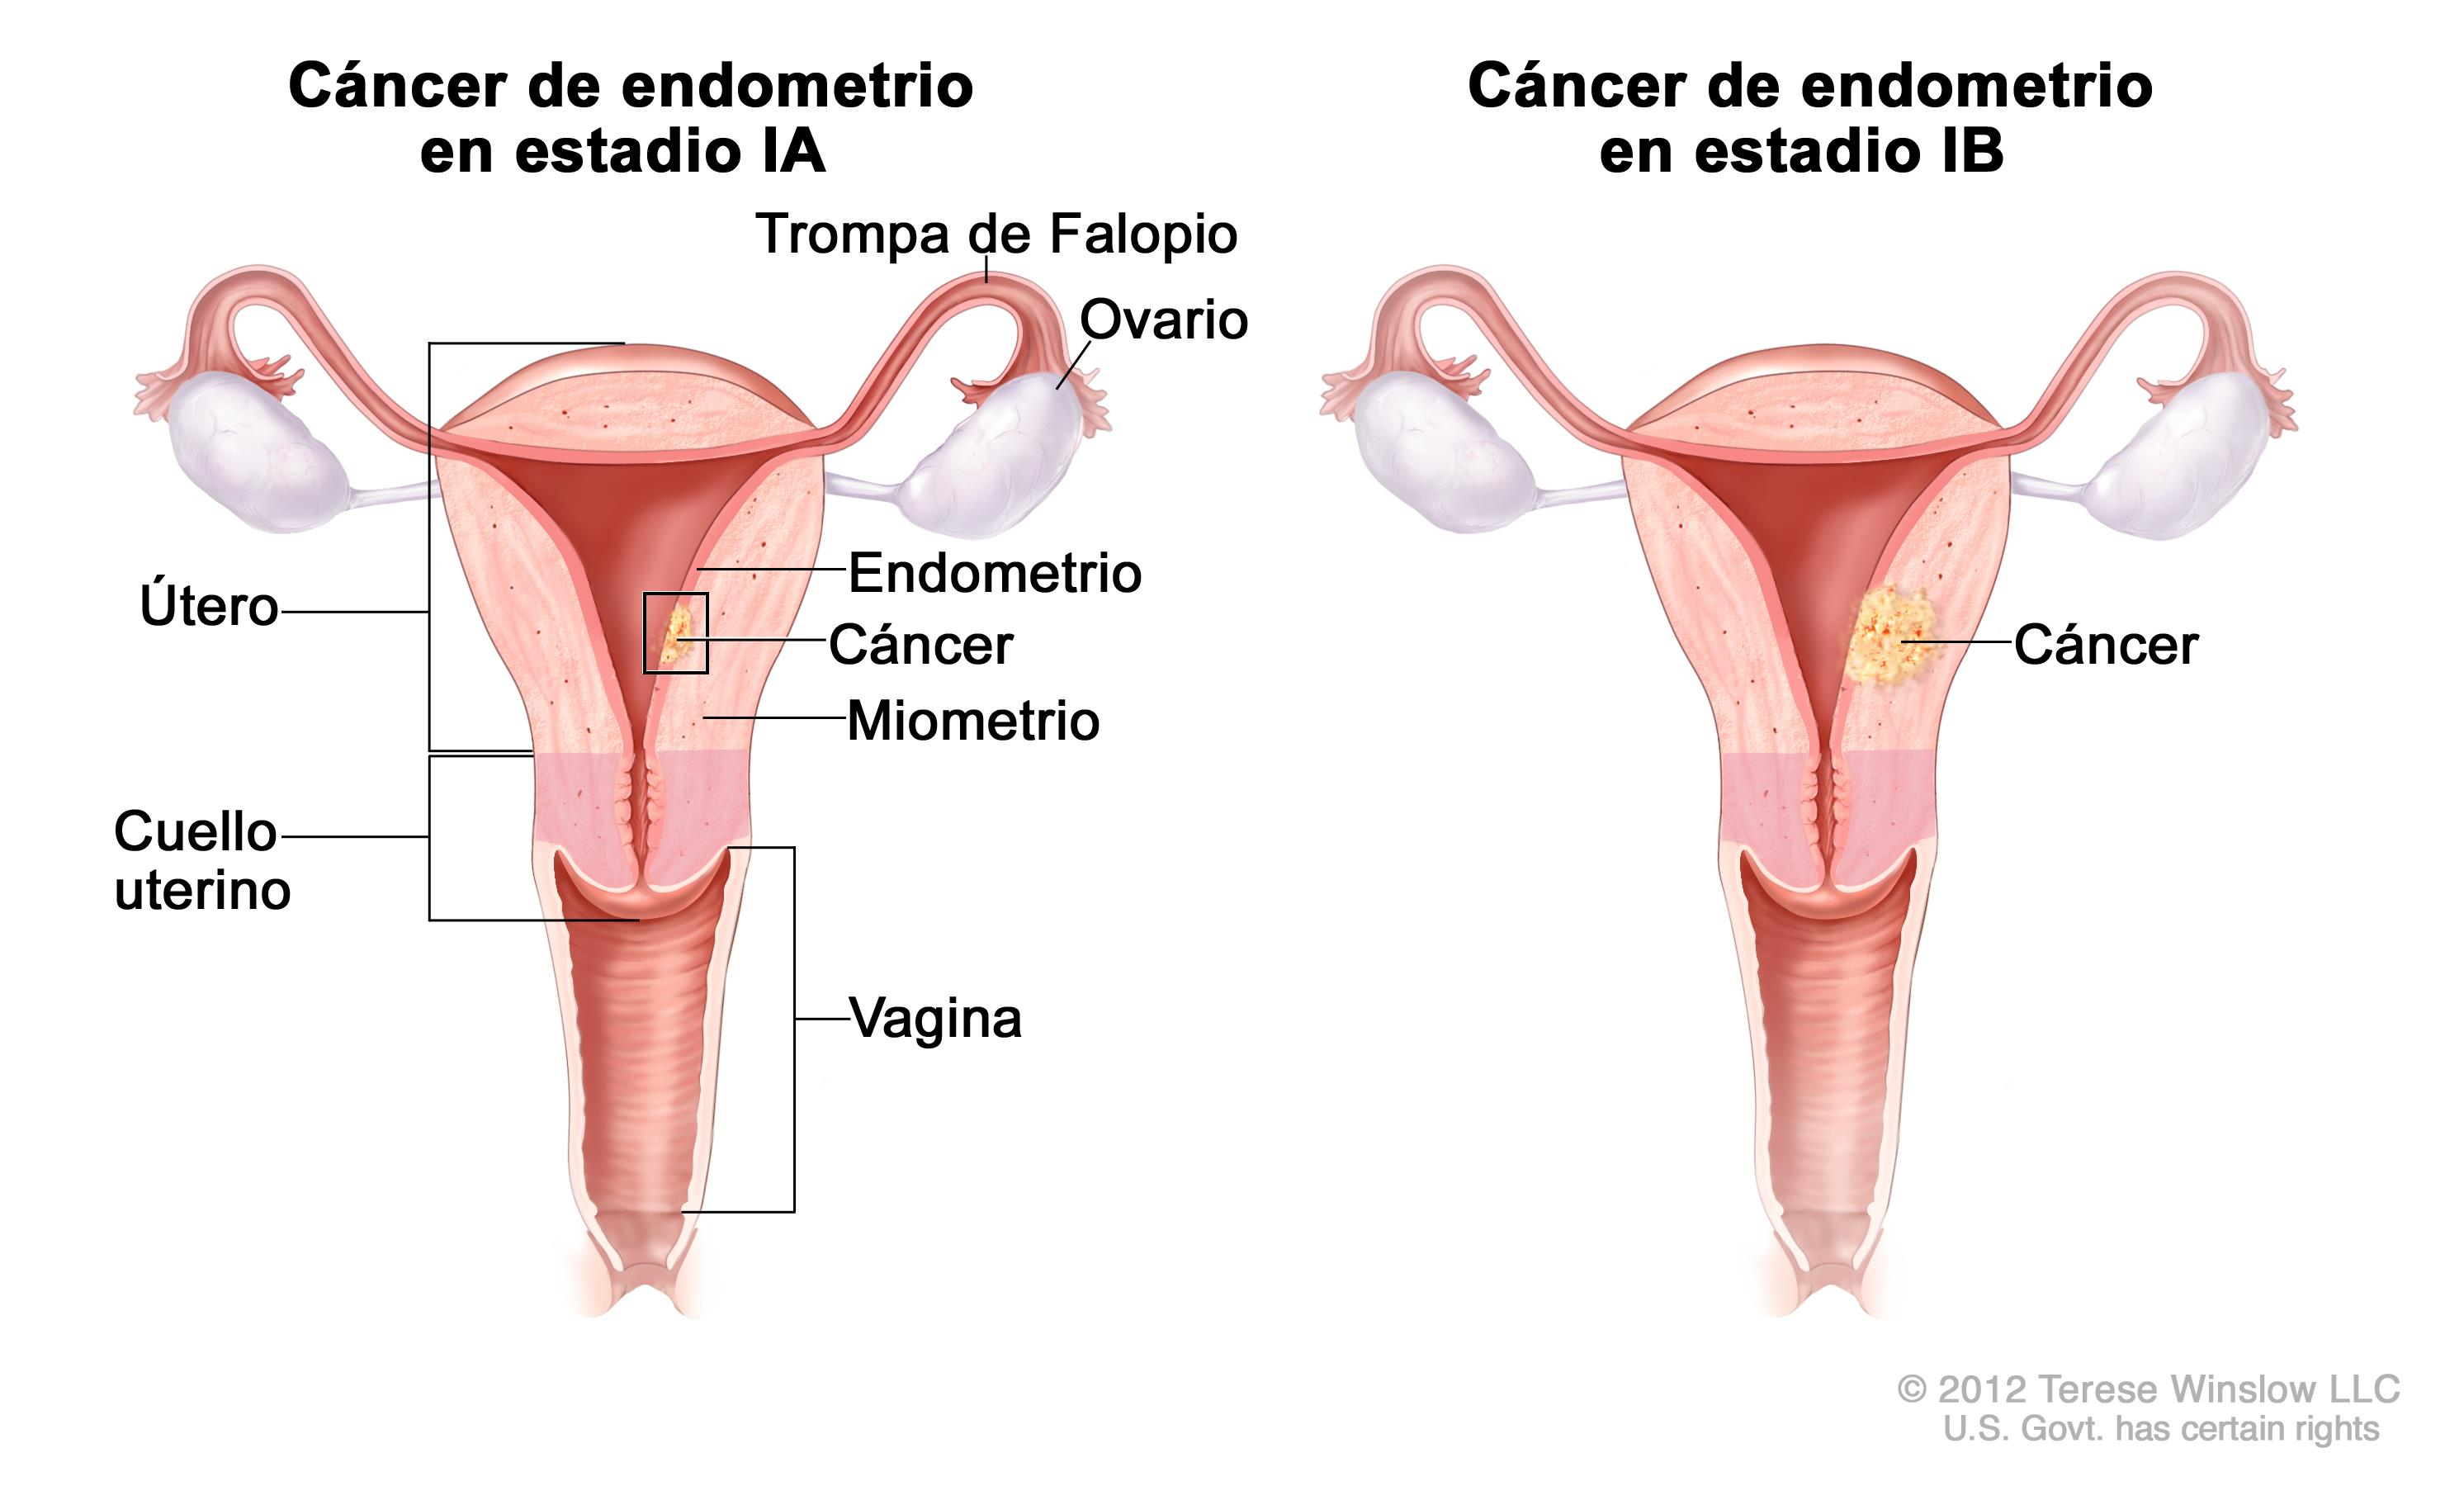 Tratamiento Del Cancer De Endometrio Pdq Version Para Pacientes